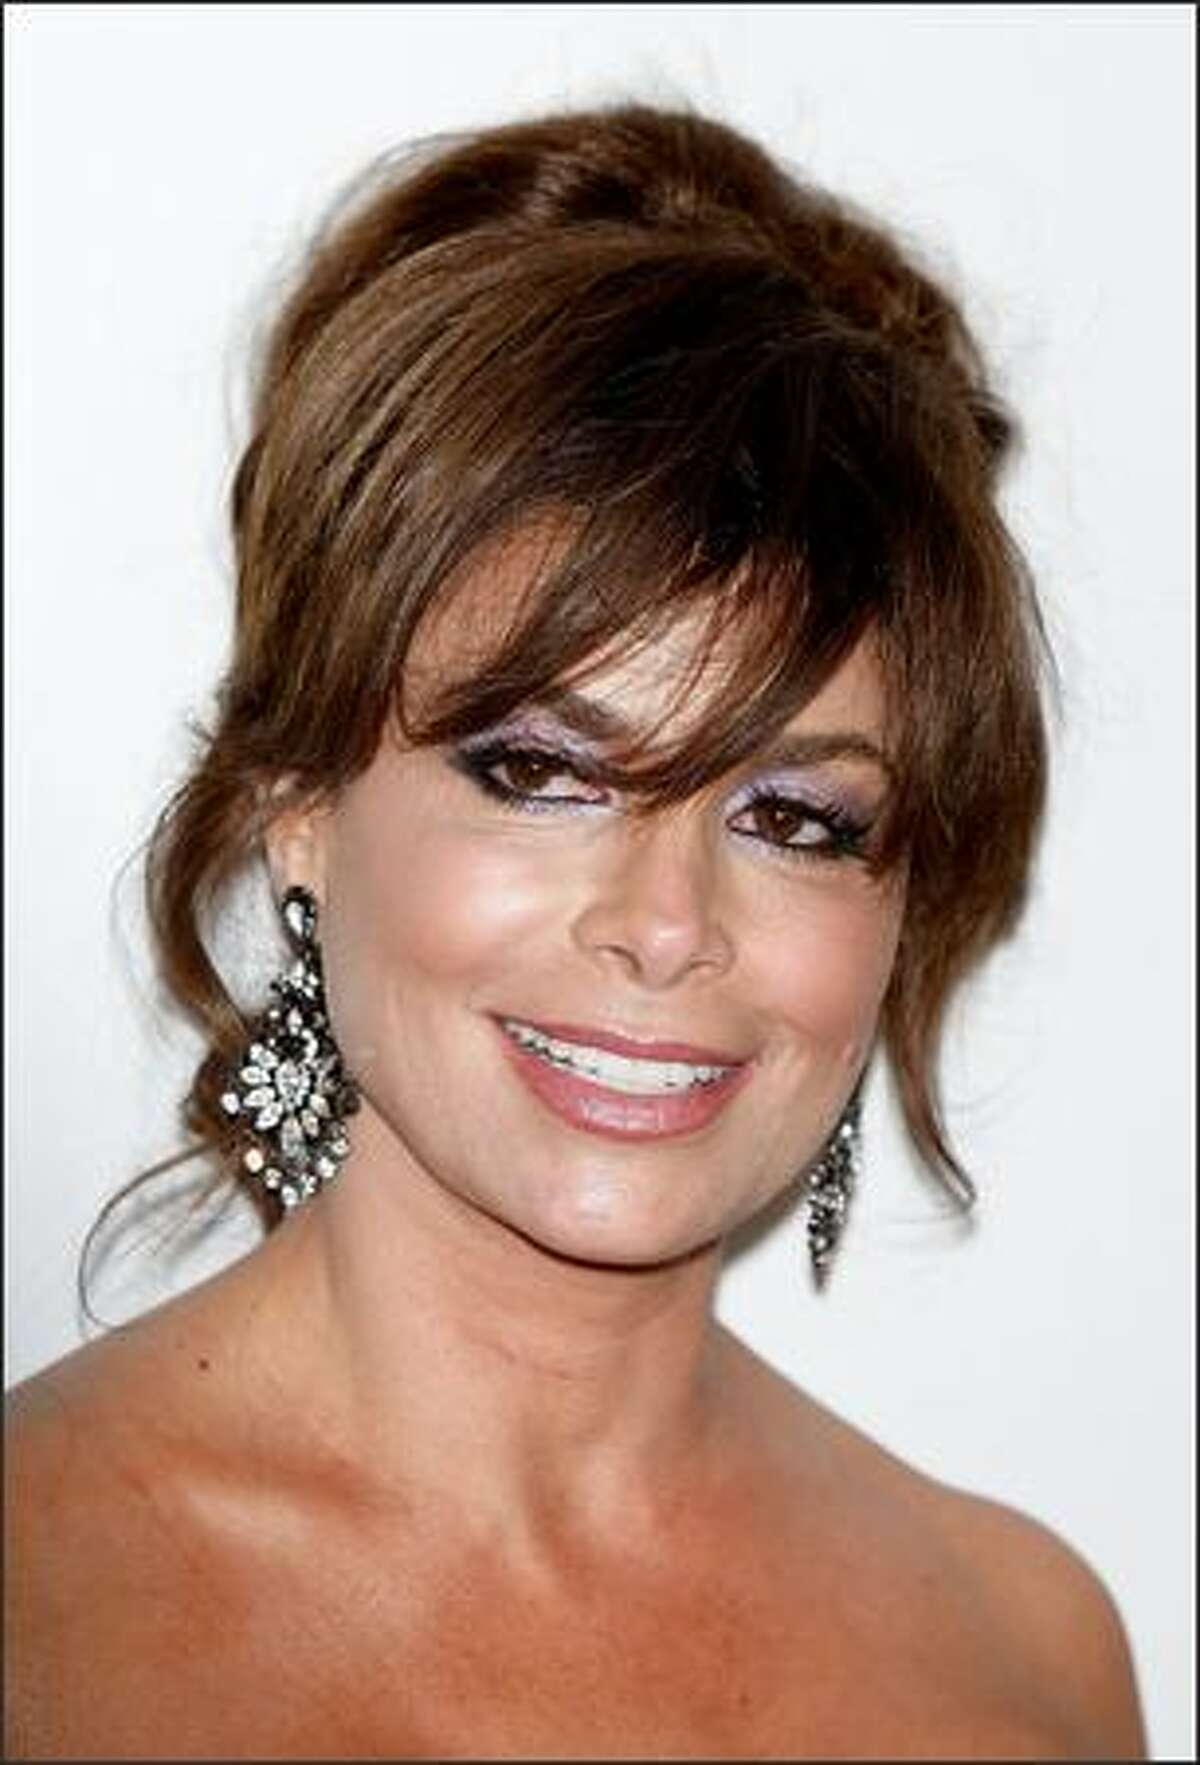 Singer Paula Abdul arrives.